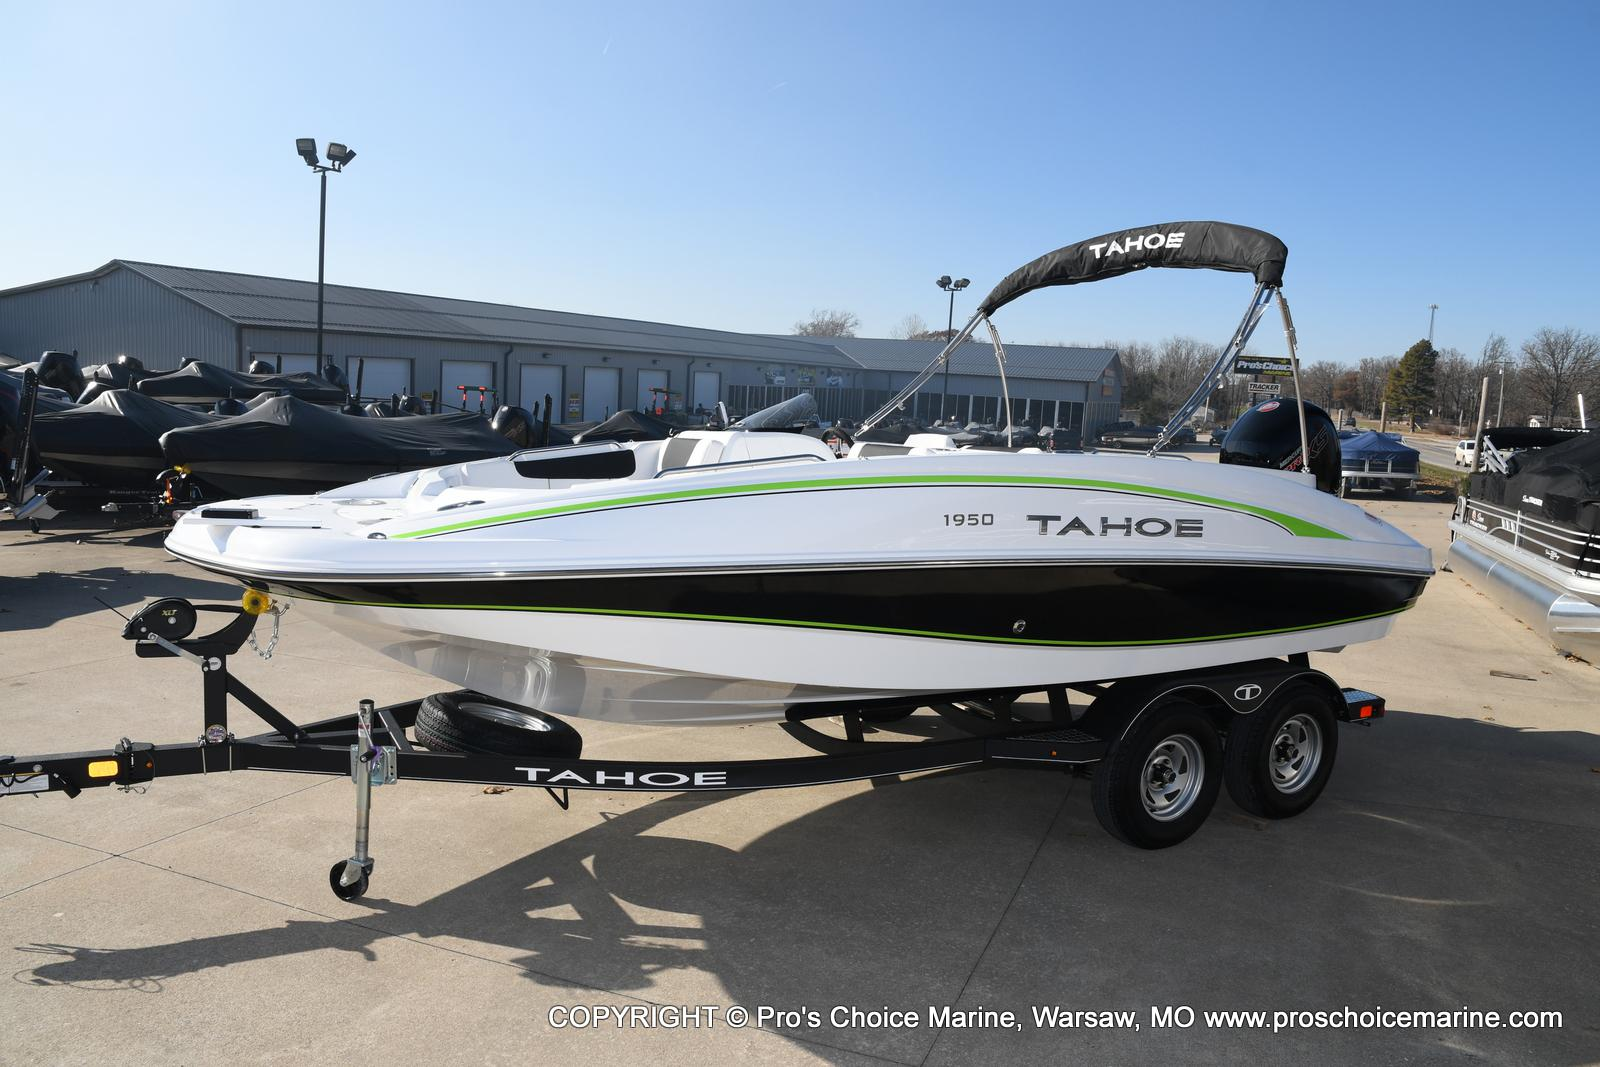 2020 Tahoe boat for sale, model of the boat is 1950 & Image # 44 of 50